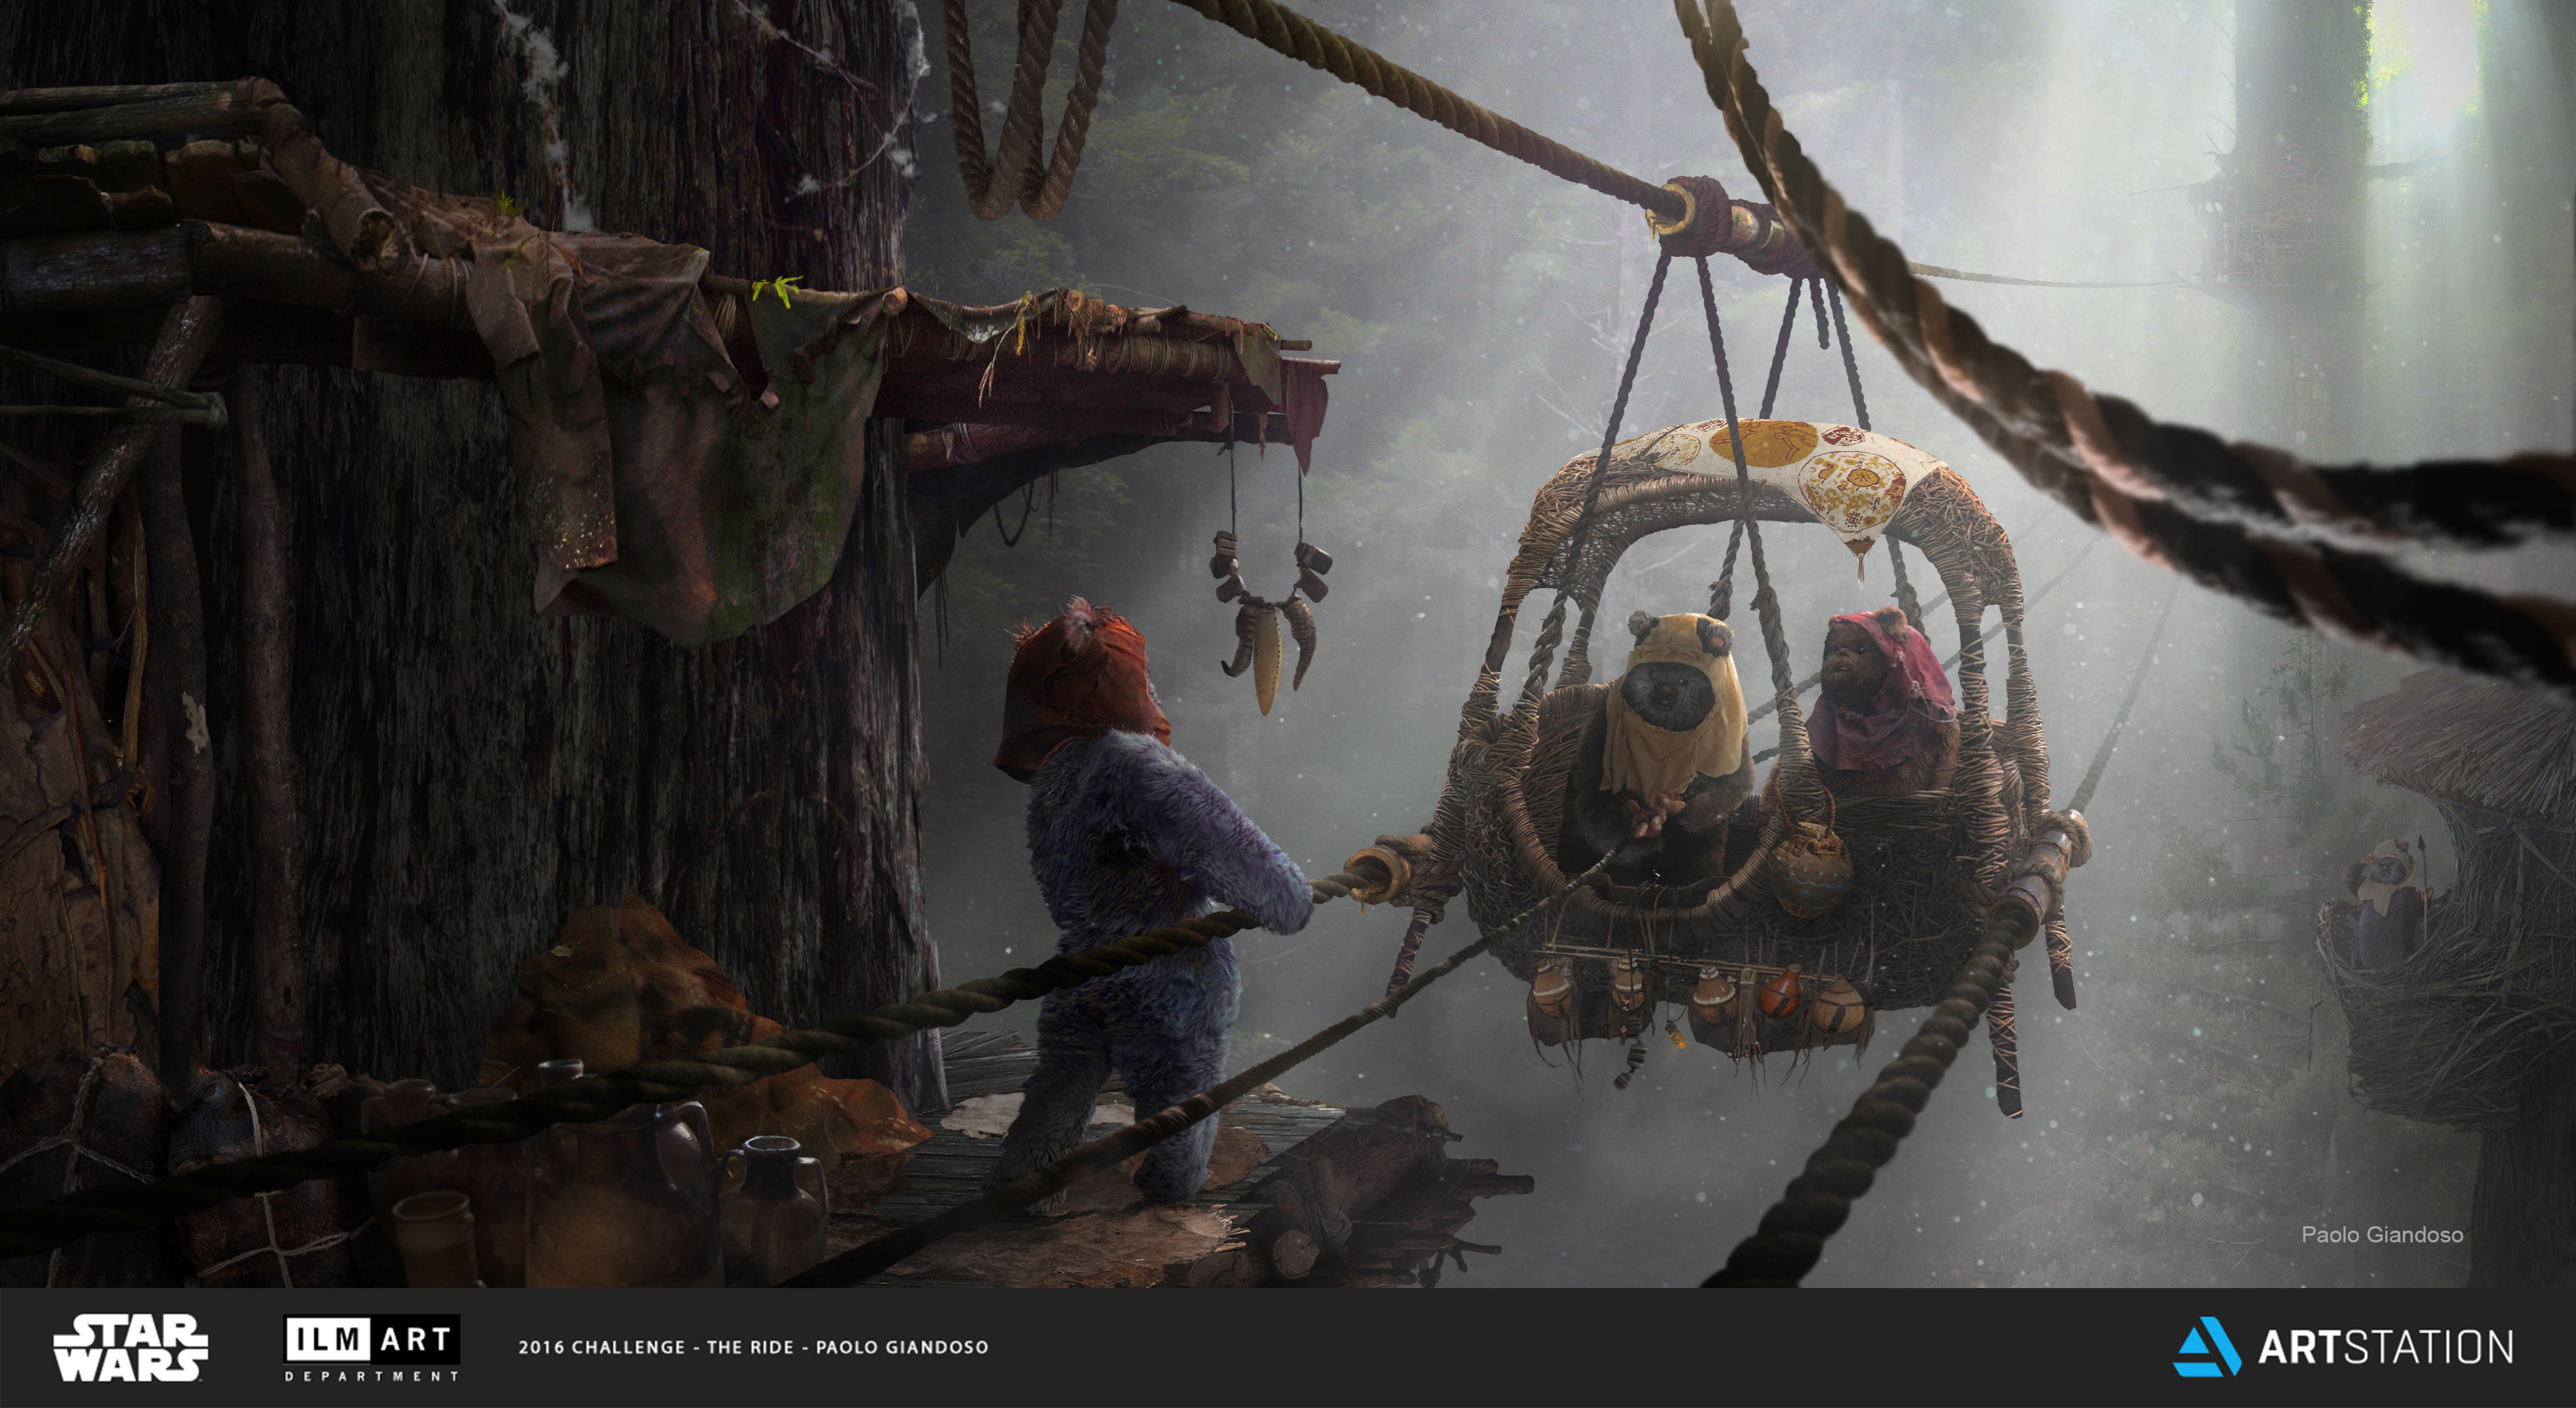 It may be a haphazard form of transportation, but for the areas of Endor that are unsafe to cross, the Ropeway is the Ewok's best chance of survival. Since accidents do happen, they place holy symbols on the baskets and have the Shaman bless it regularly.